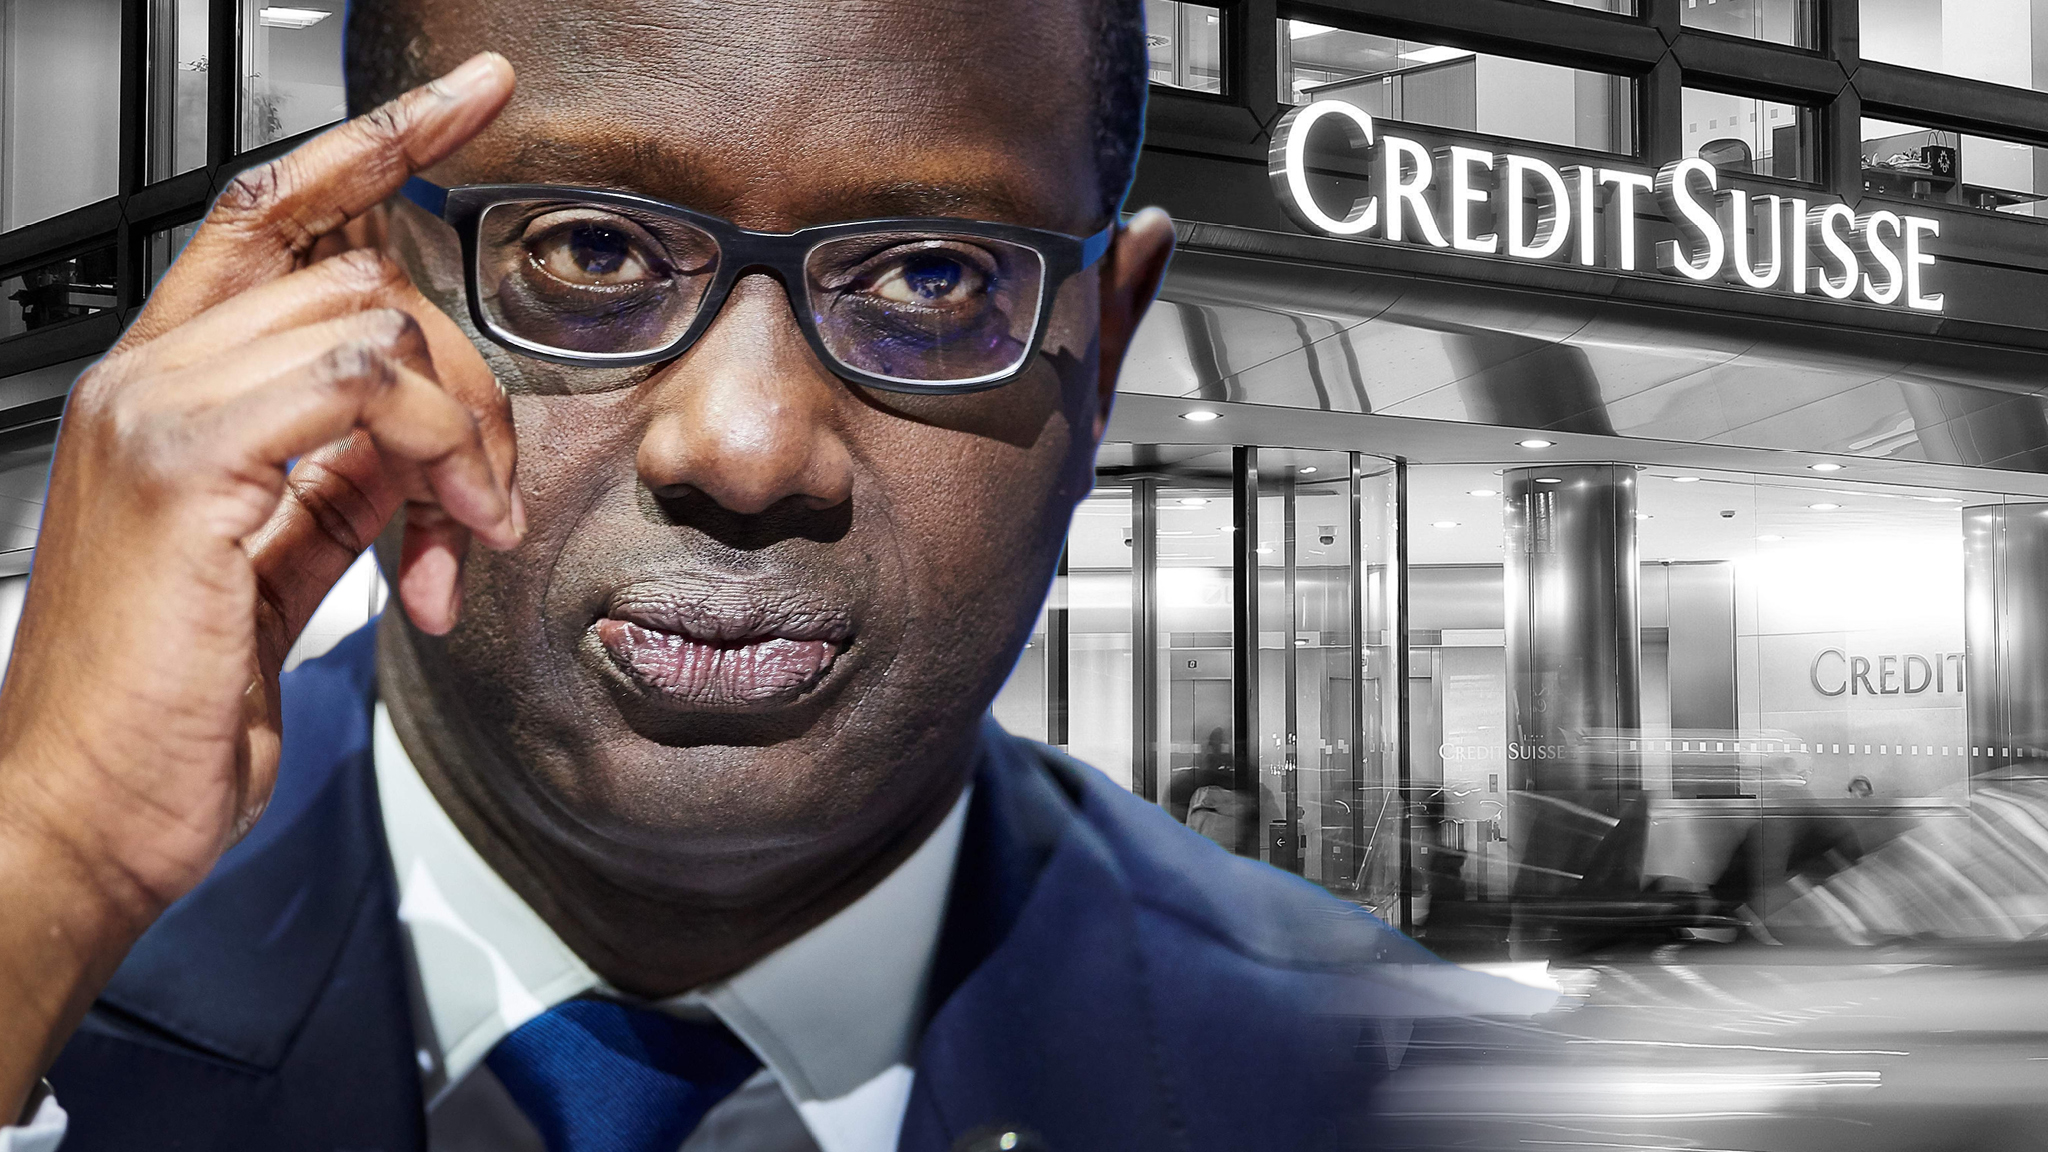 Credit Suisse to give half its profits to shareholders